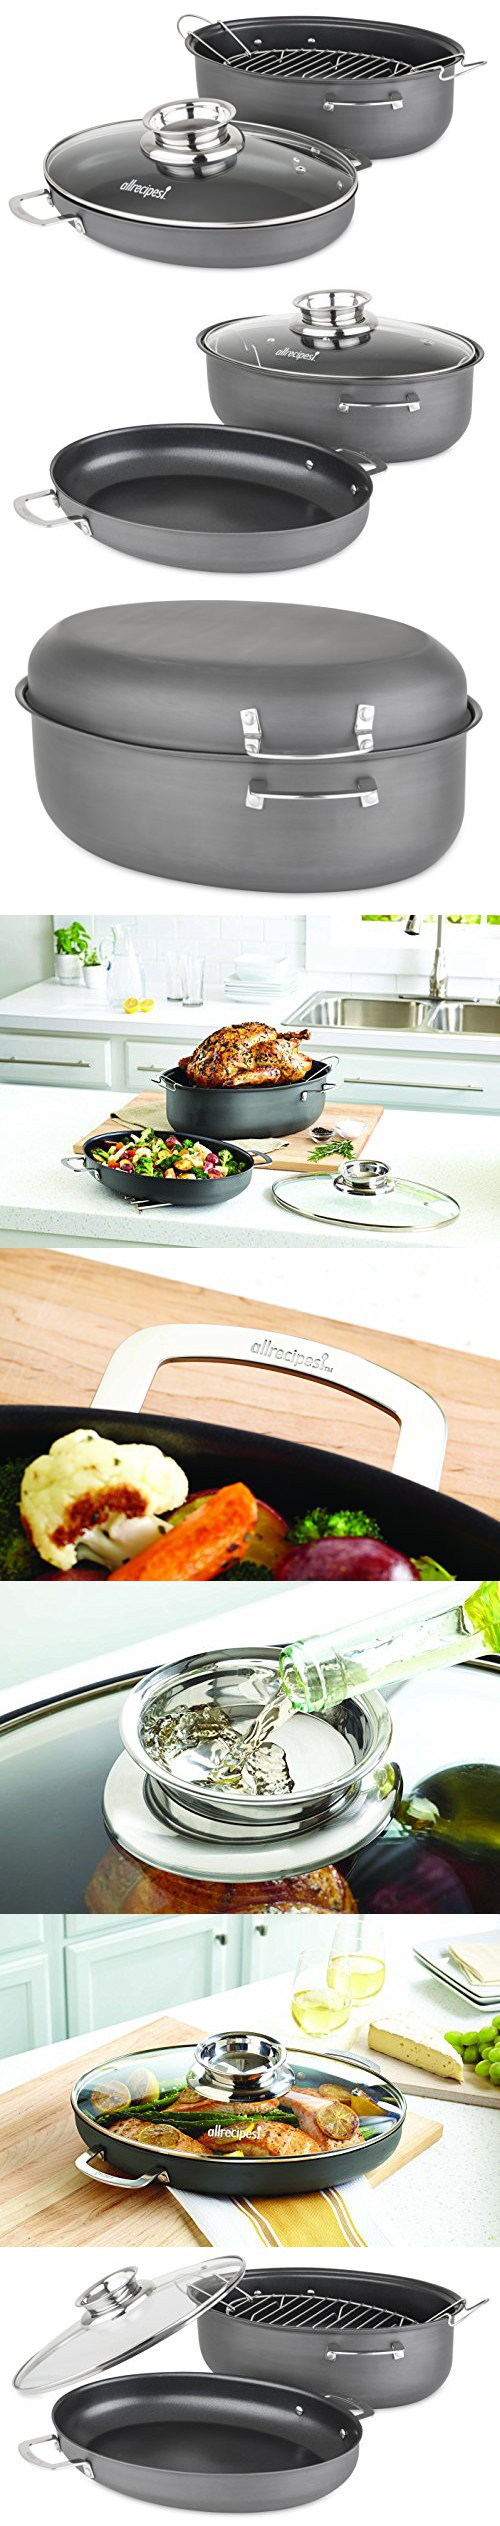 Allrecipes Hard Anodized Nonstick 3 In 1 Oval Roaster With Au Gratin And Aroma Lids 8 5 Quart 4 Piece Au Gratin Gratin Allrecipes